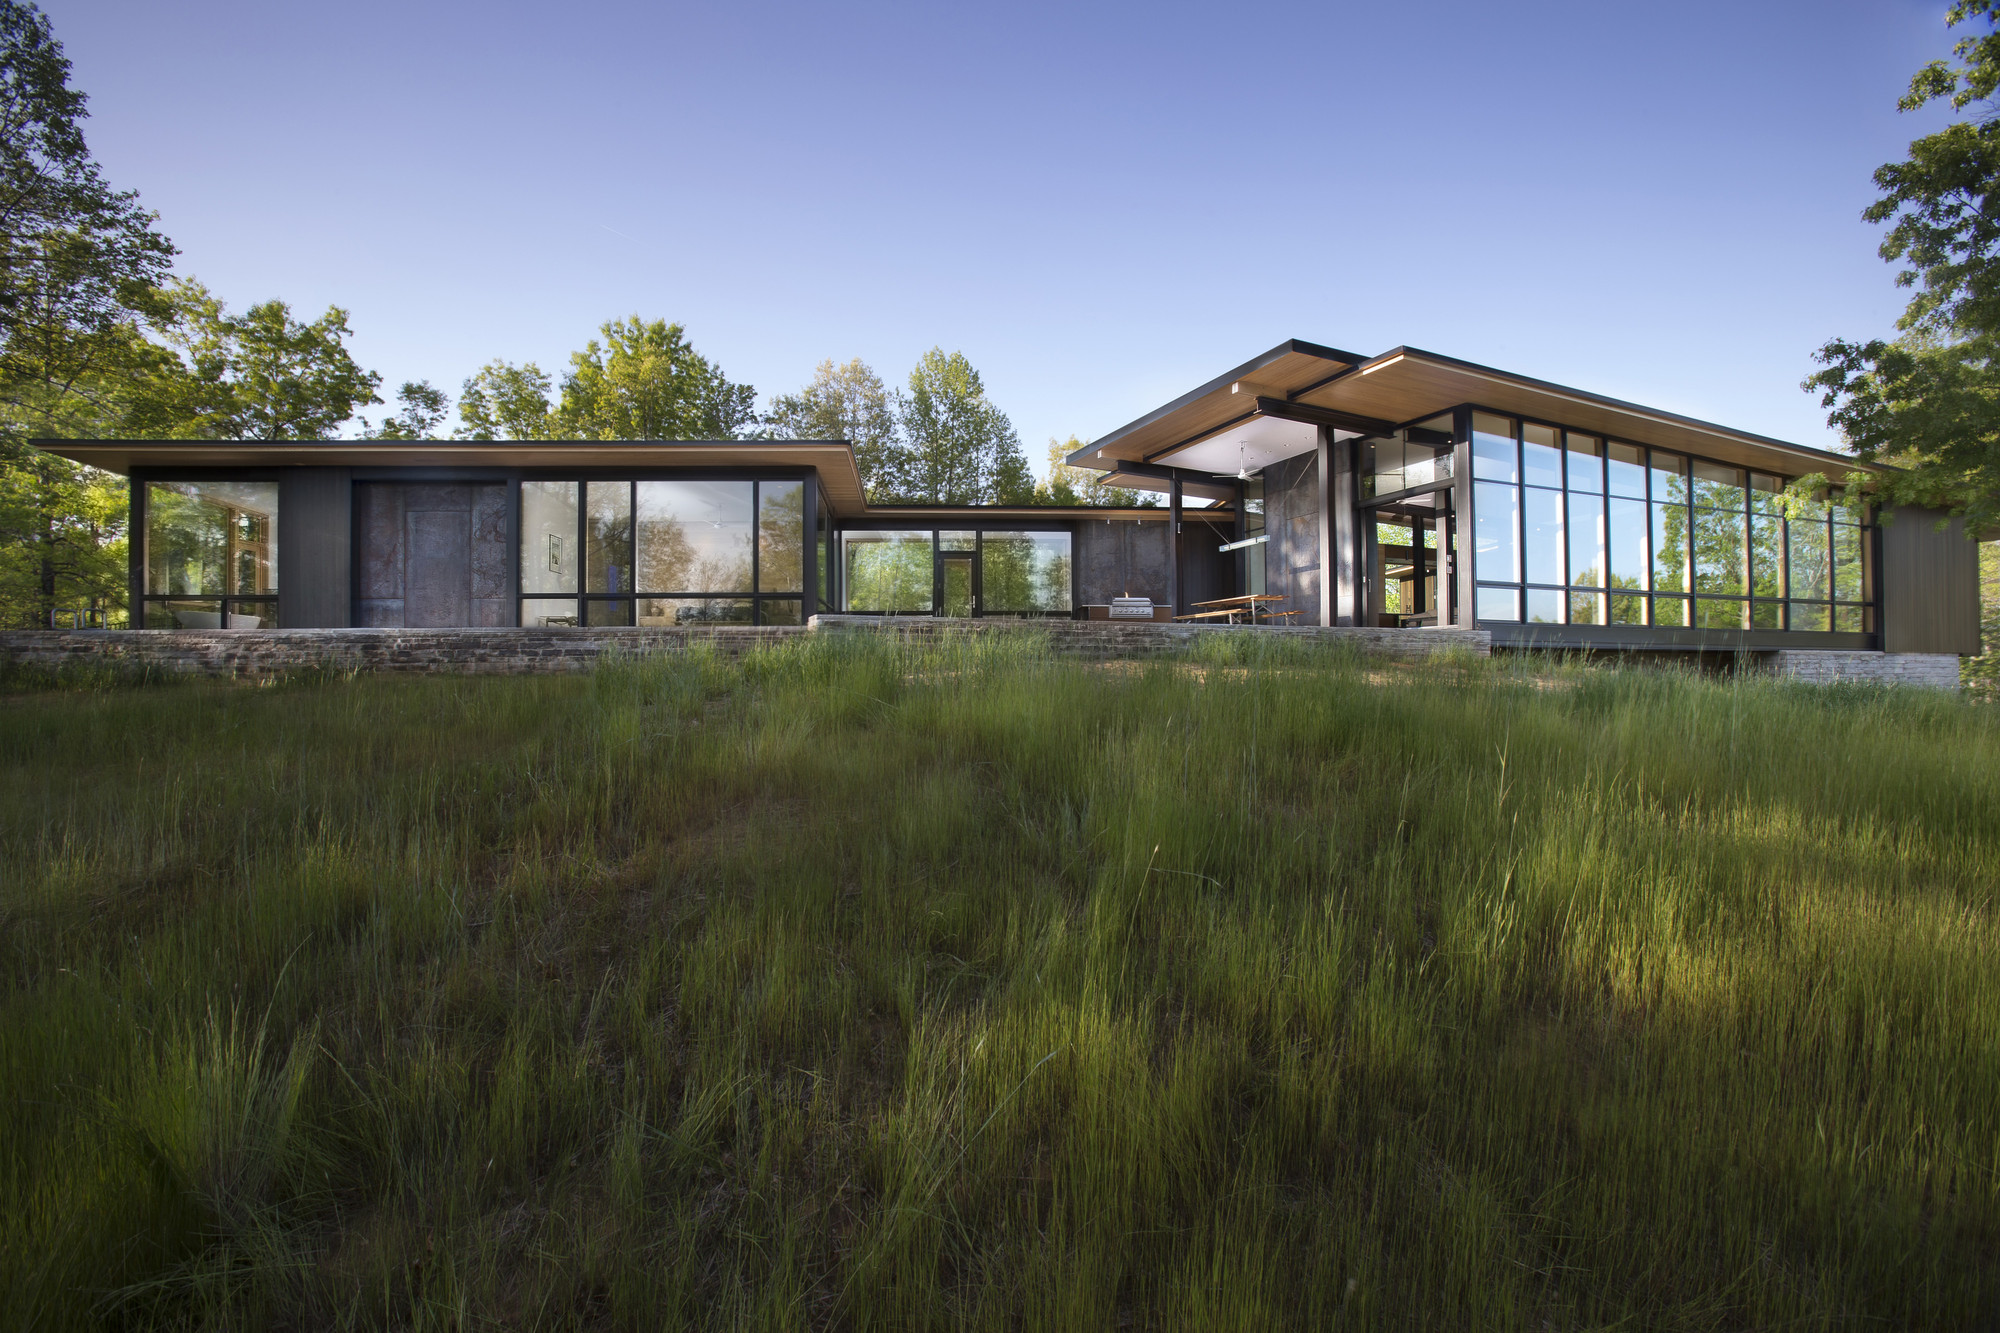 Mountain View Home Unites With Surrounding Landscape